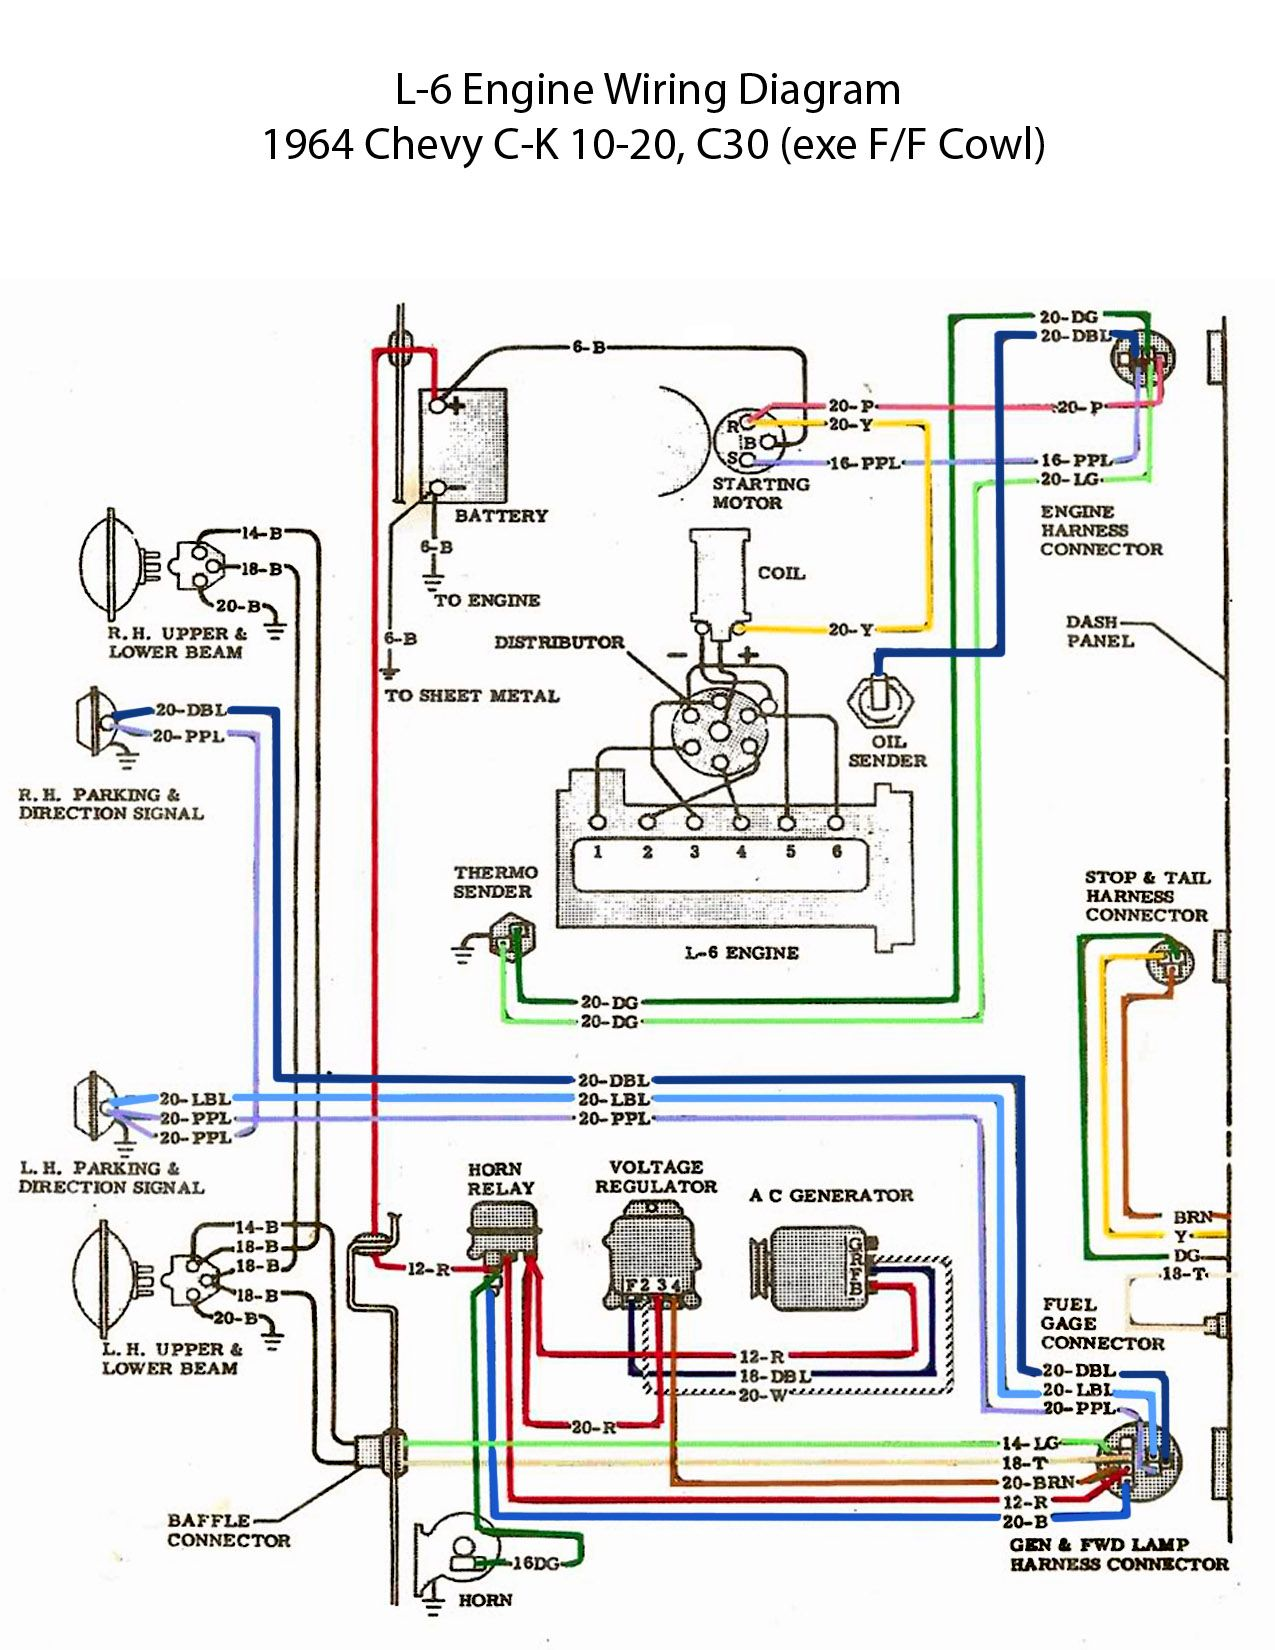 sbc engine ignition wiring wiring diagram expert sbc engine ignition wiring [ 1275 x 1650 Pixel ]